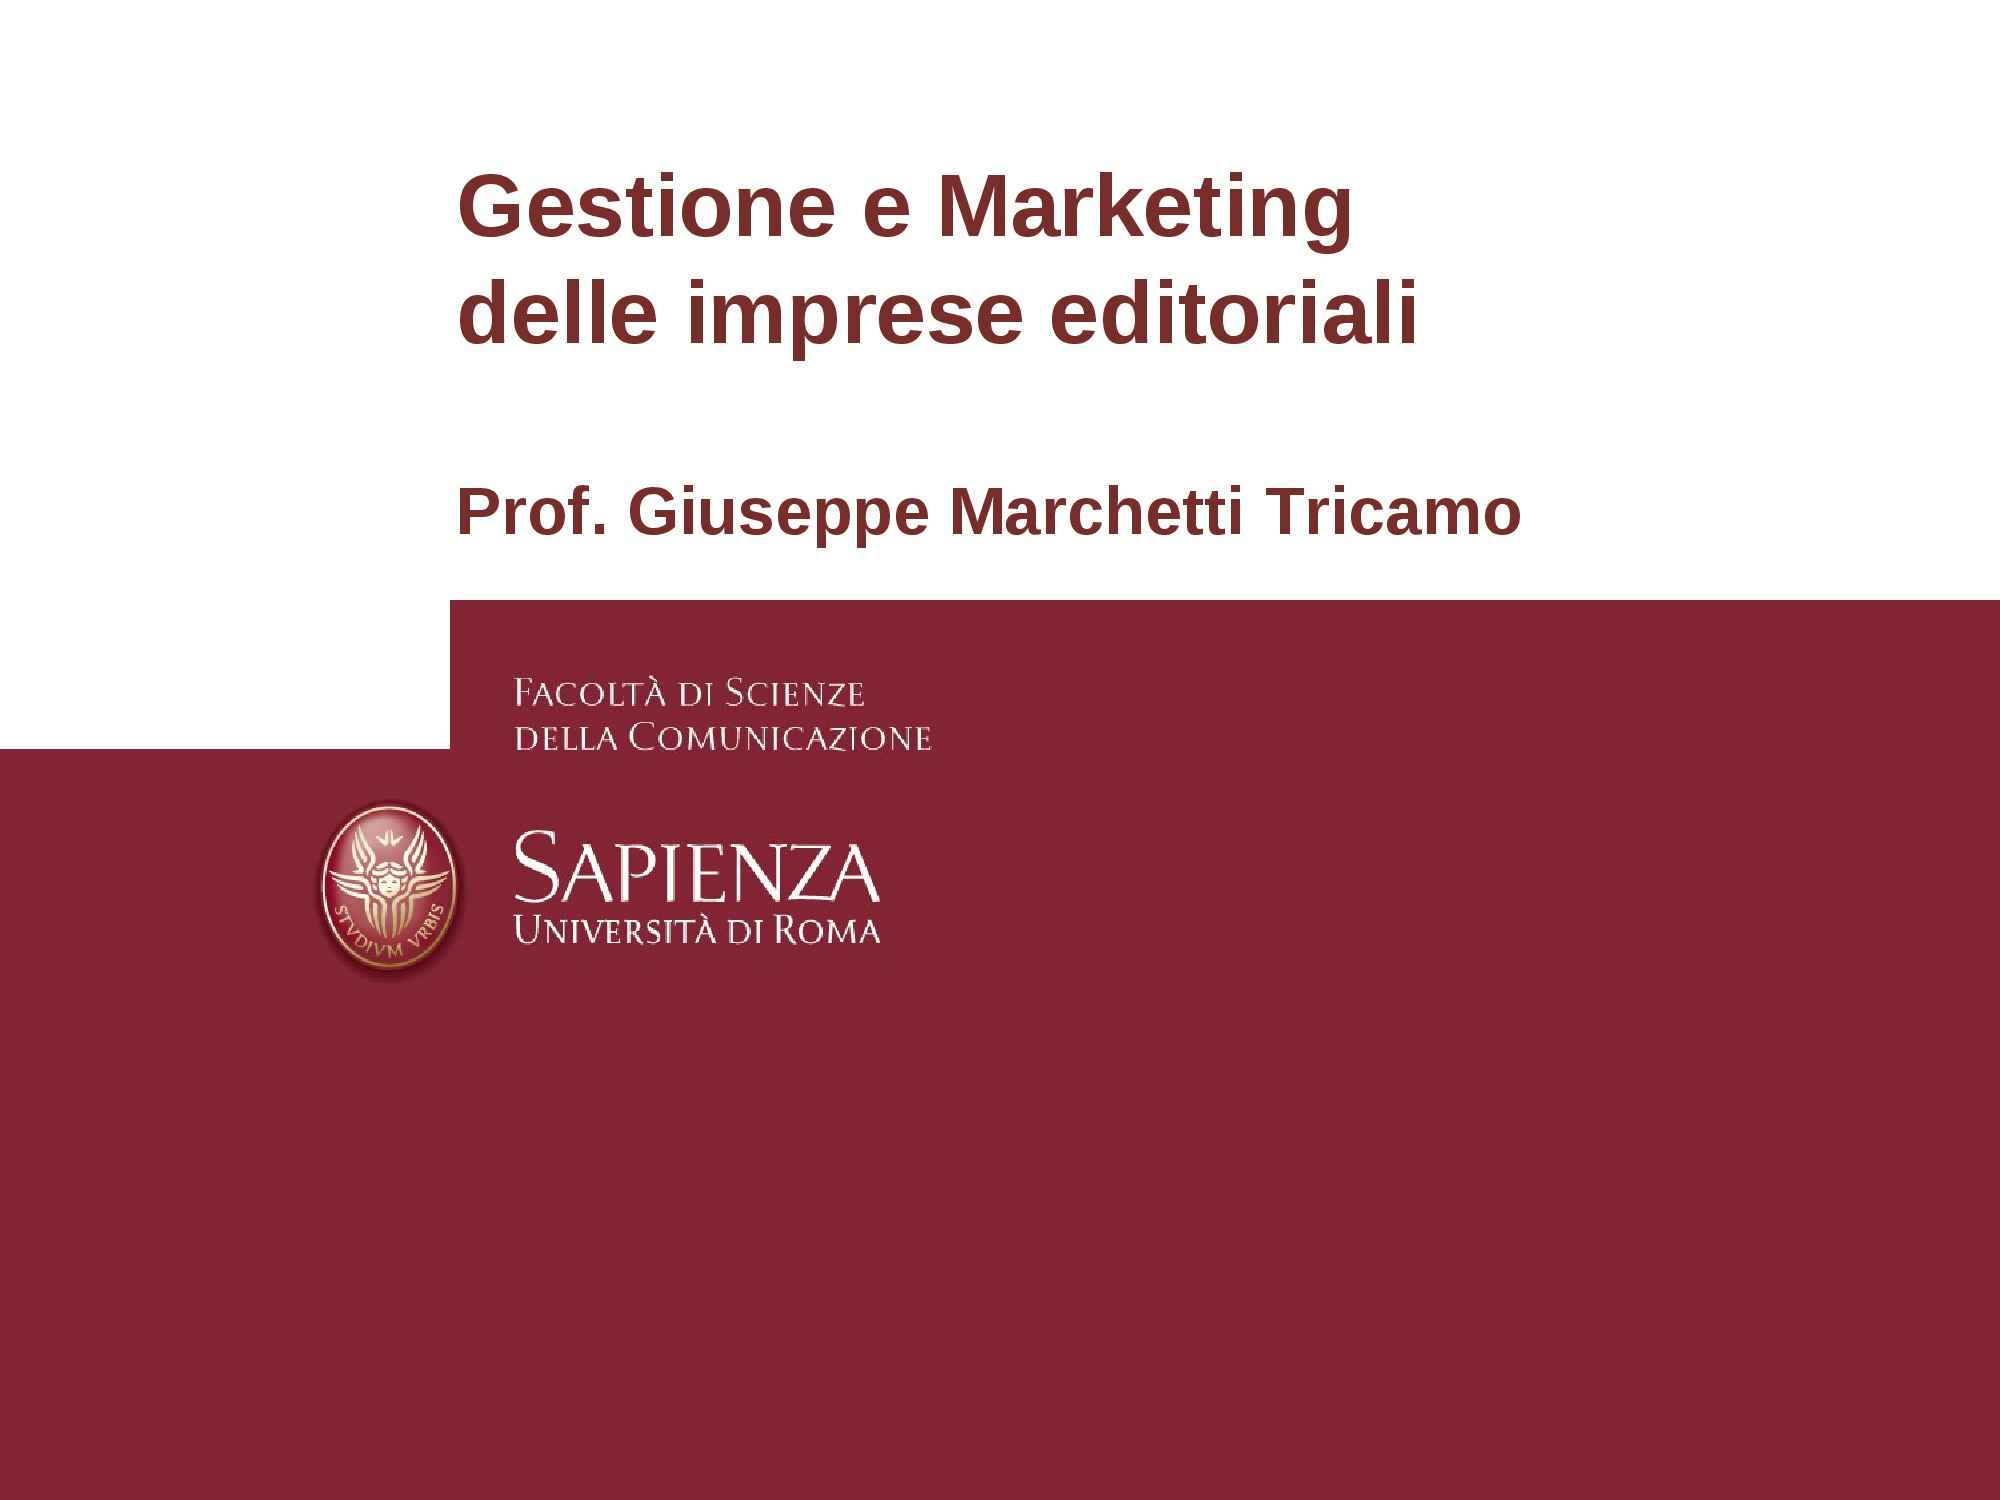 Imprese editoriali - Gestione e marketing Pag. 1